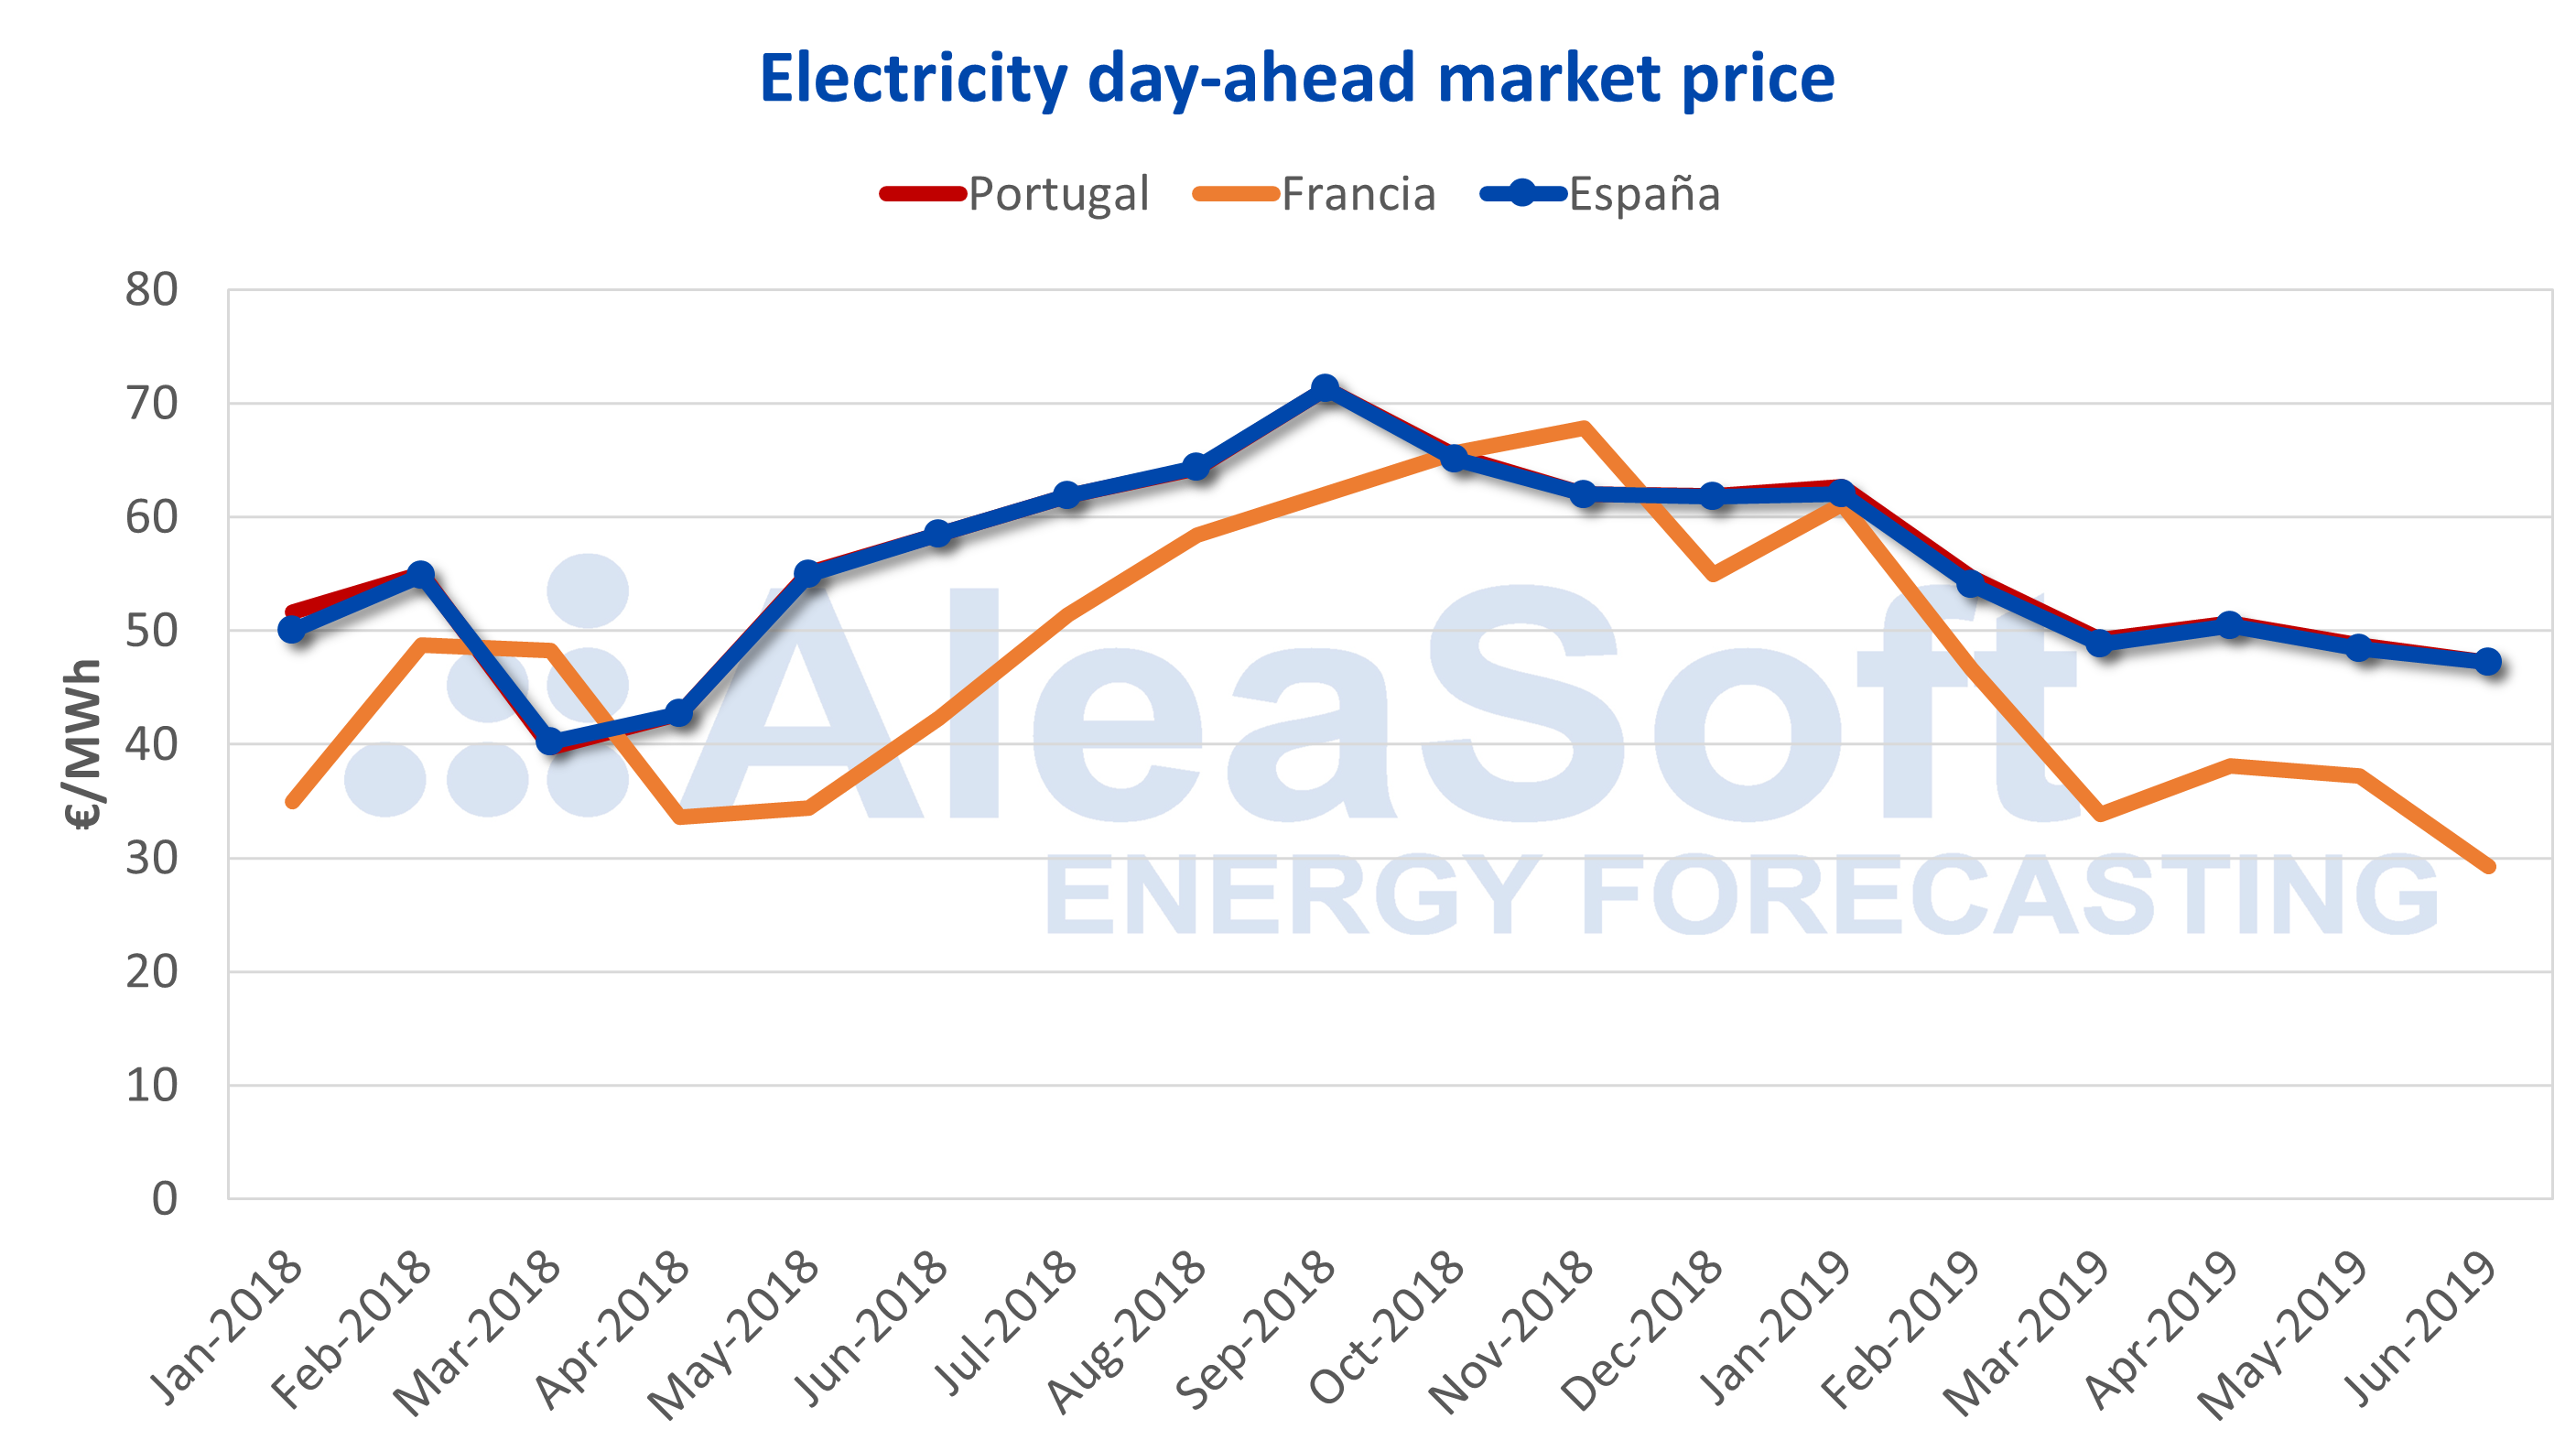 AleaSoft - Electricity market price Spain France Portugal